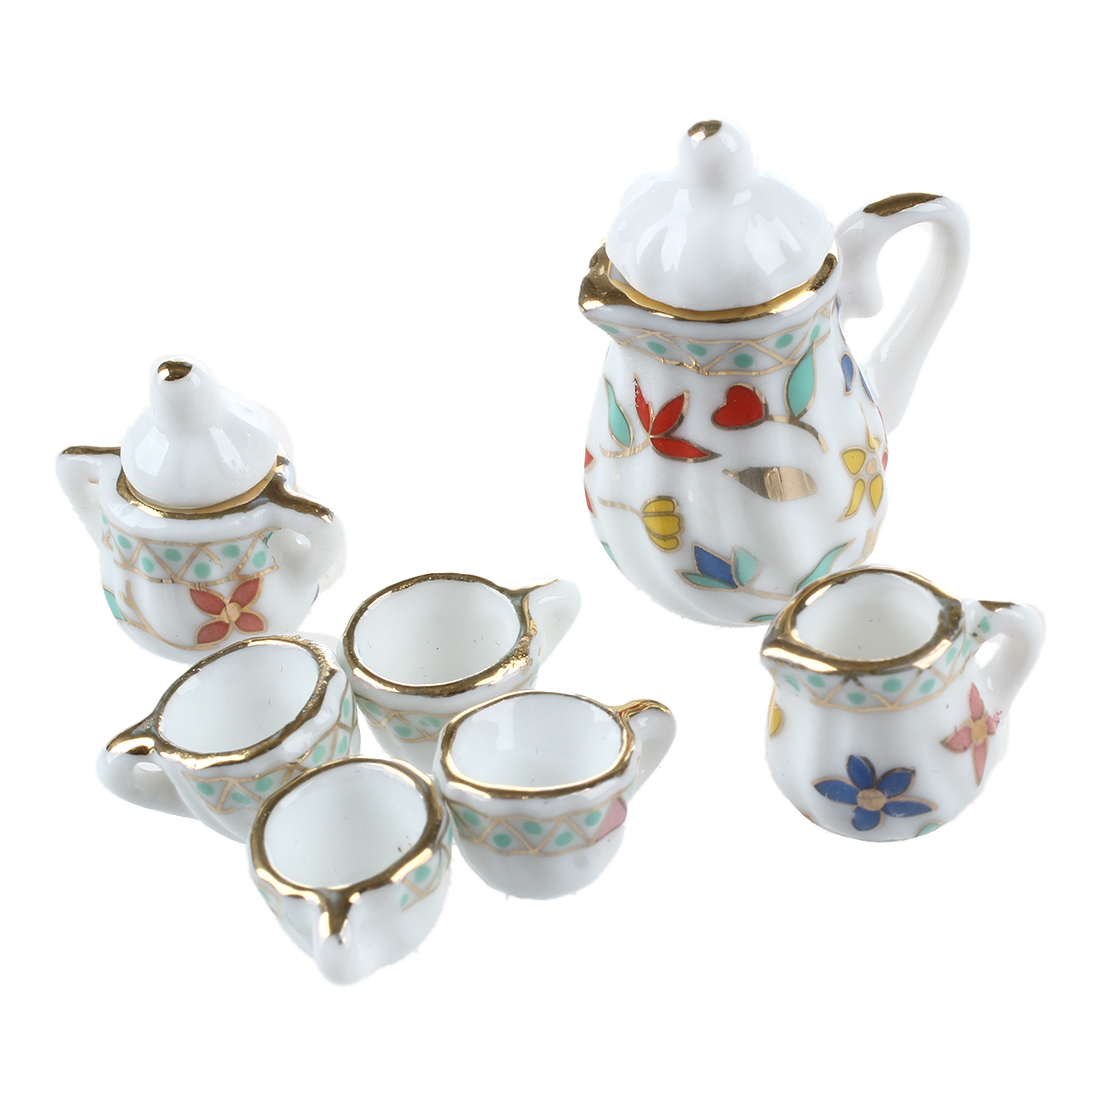 Tea Set Toy Us 3 32 30 Off 15 Piece Nourriture Miniature Kitchen Dollhouse Dinnerware Porcelain Kids Tea Set Toy Cup Plate Colorful Floral Print In Kitchen Toys